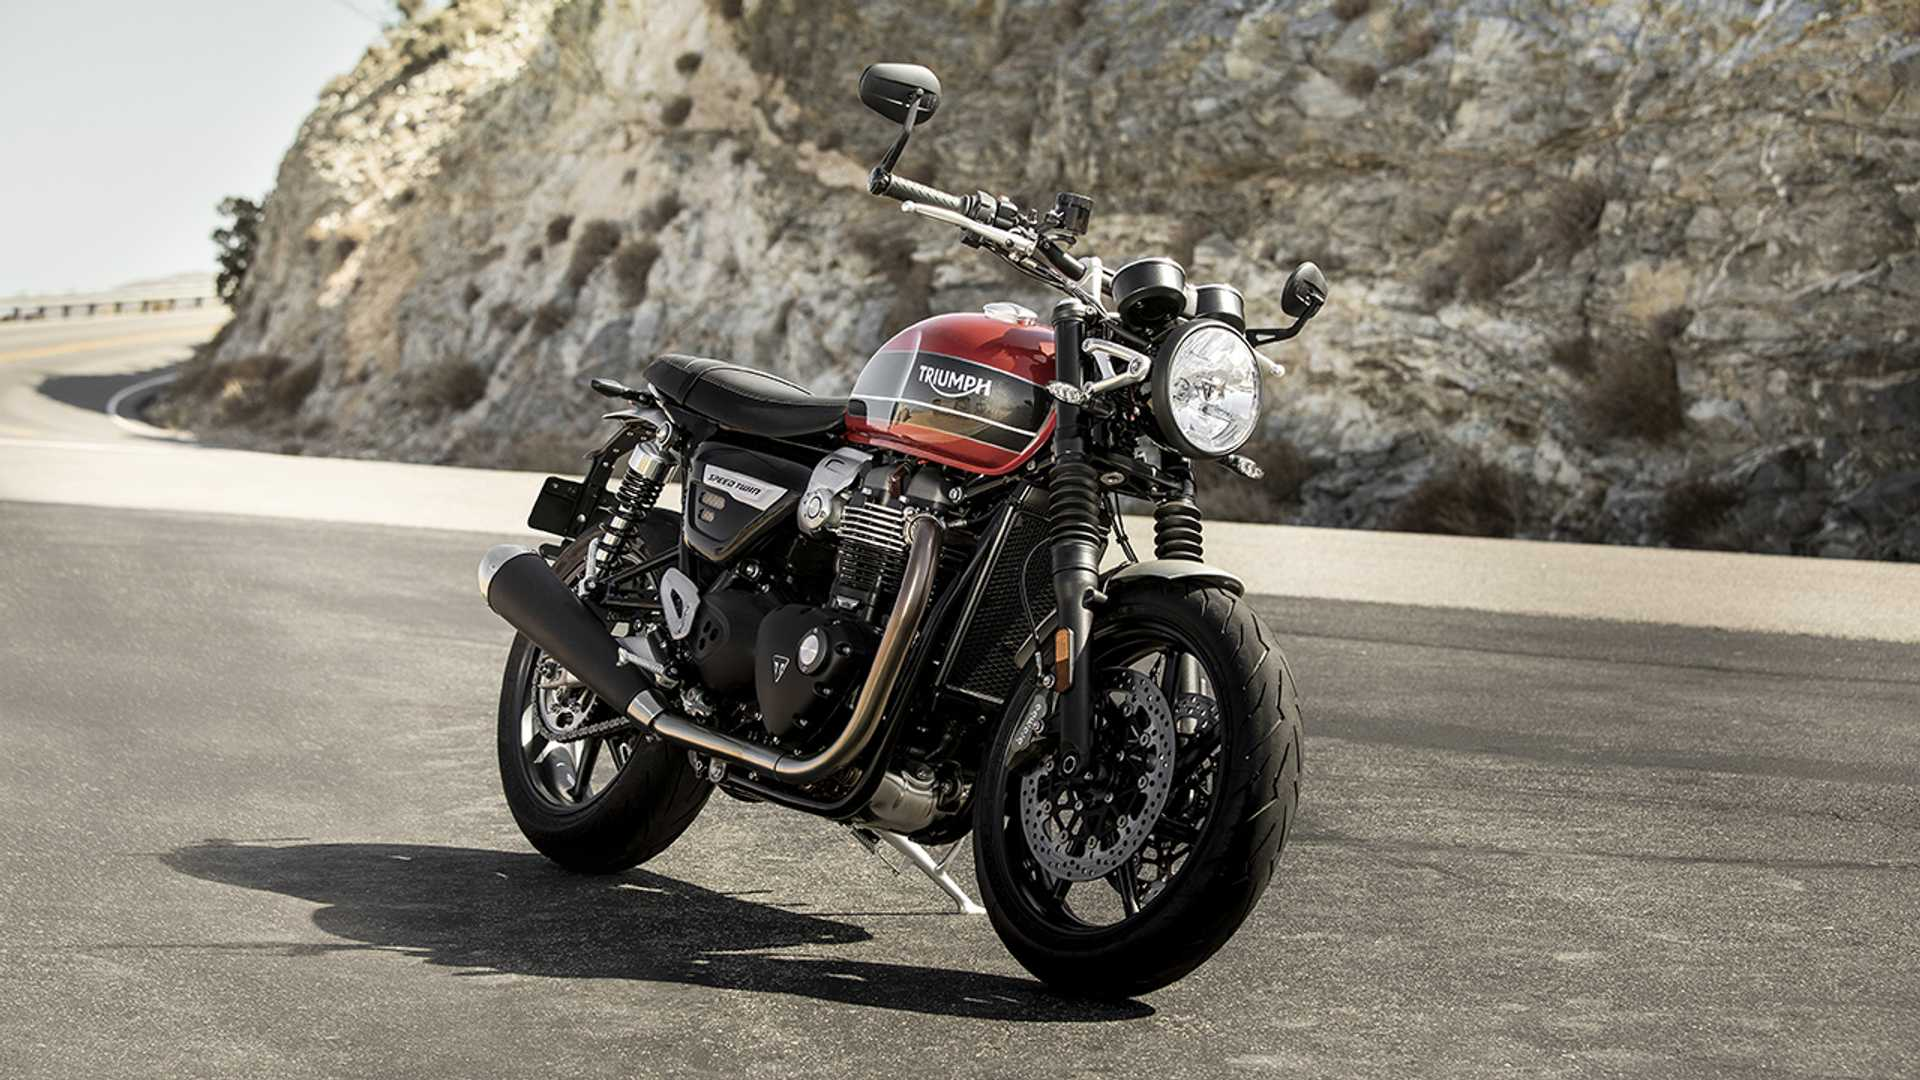 Triumph Is Plugging In With New TE-1 Electric Bike Project